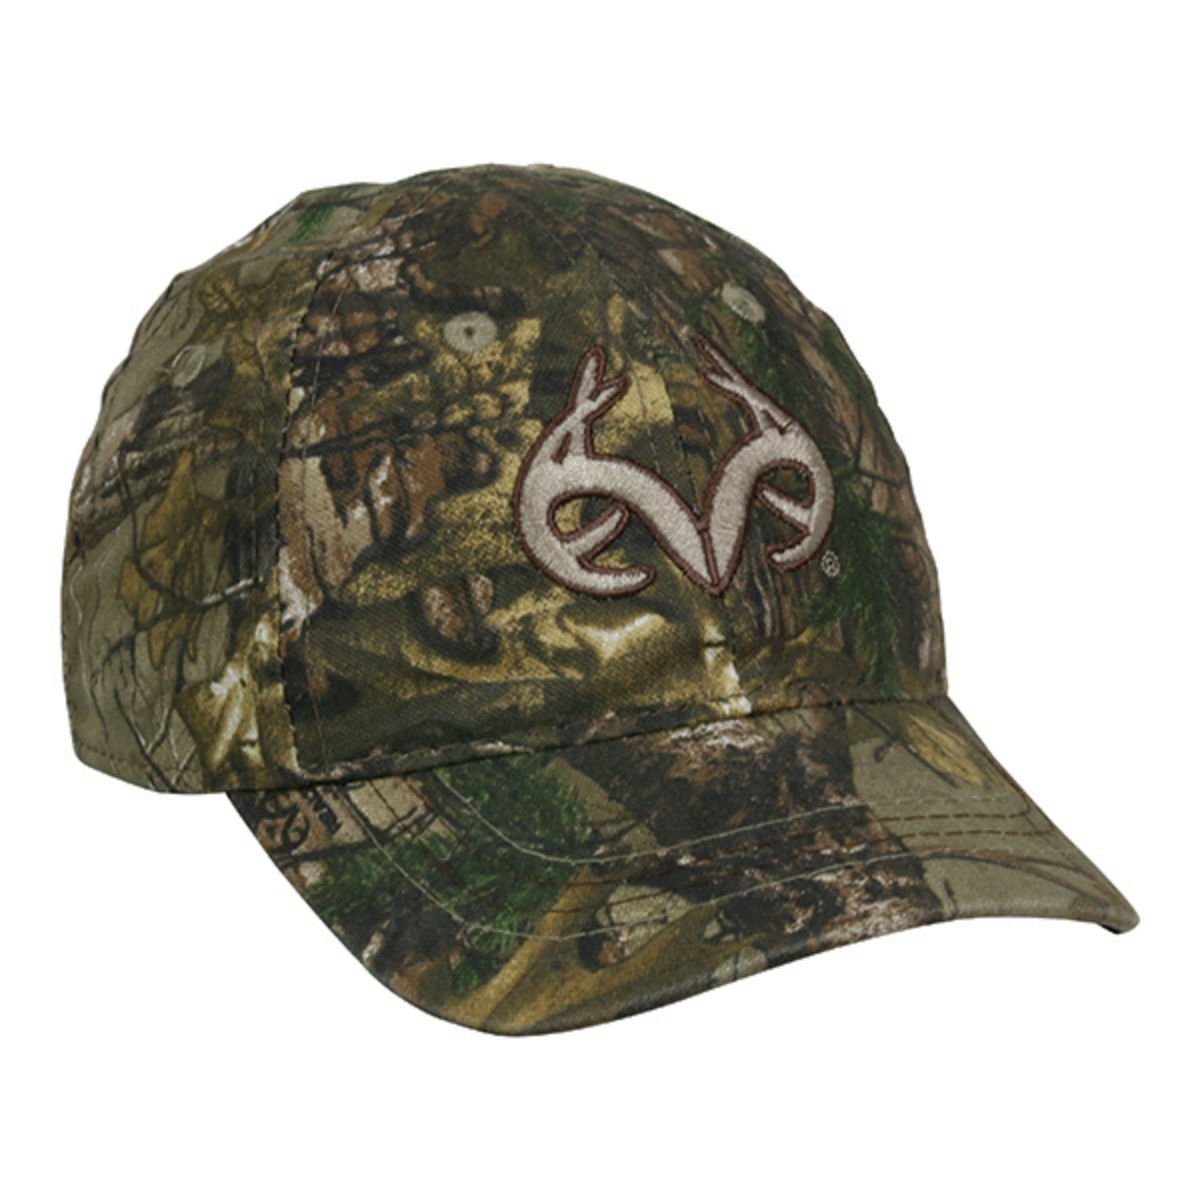 1d66957b431 Get Quotations · Toddler Realtree Camo Buck Horn Kids Hunting Hat   Cap